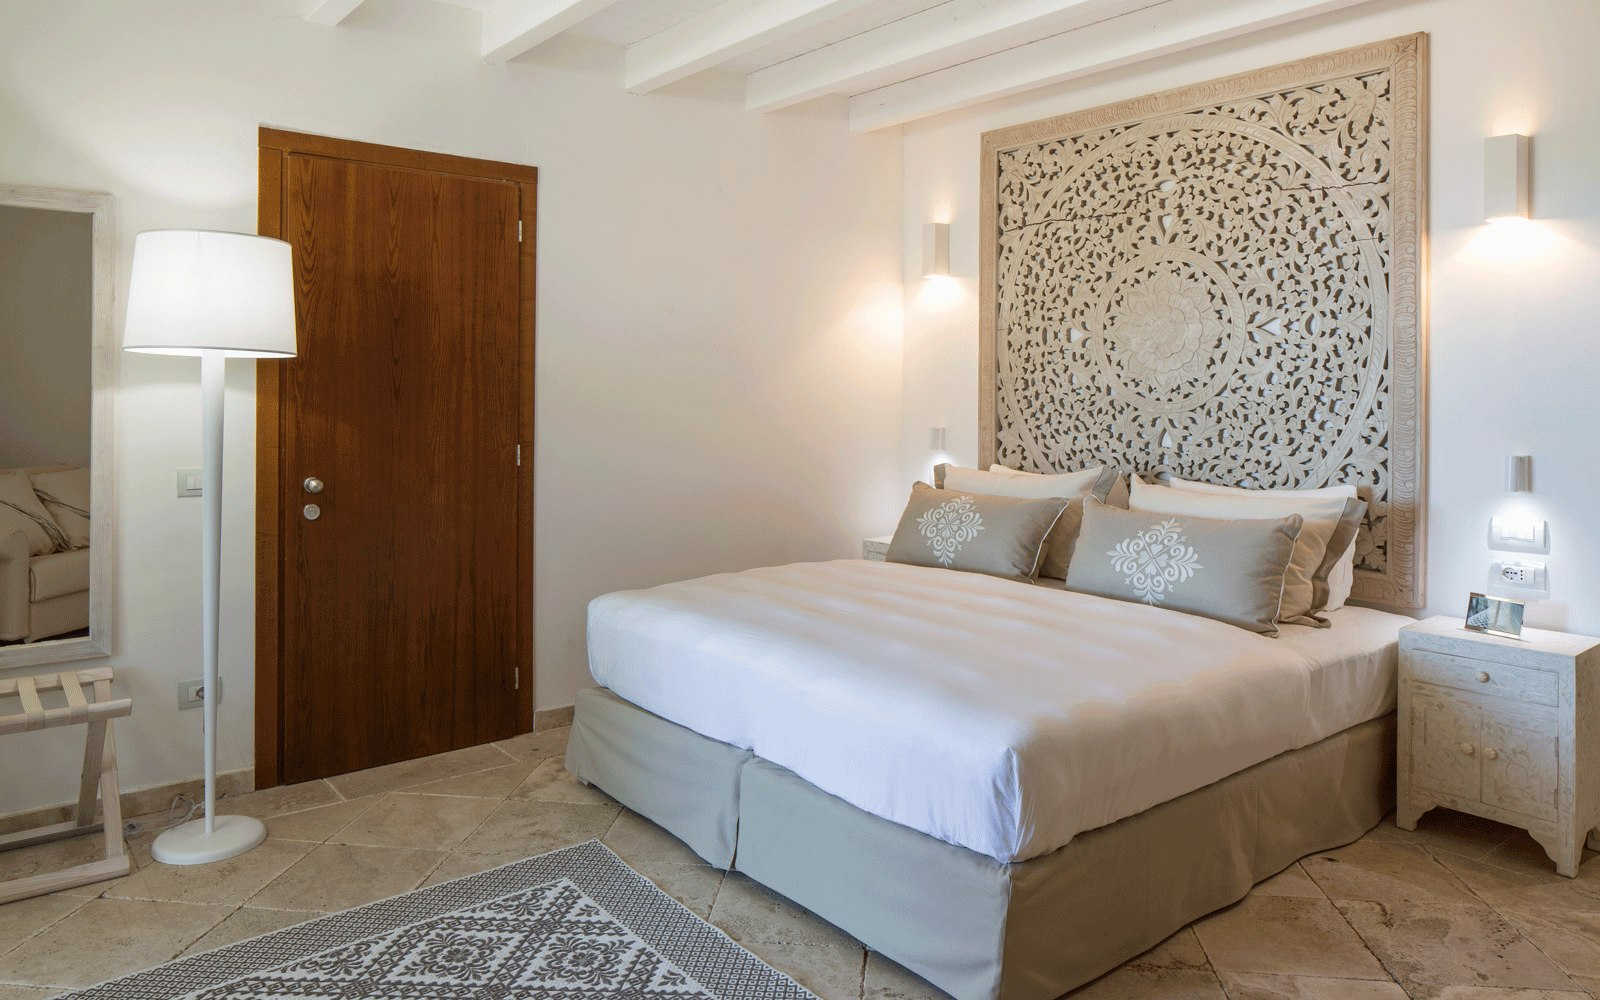 Two Bedroom Villa at Falkensteiner Resort Capo Boi